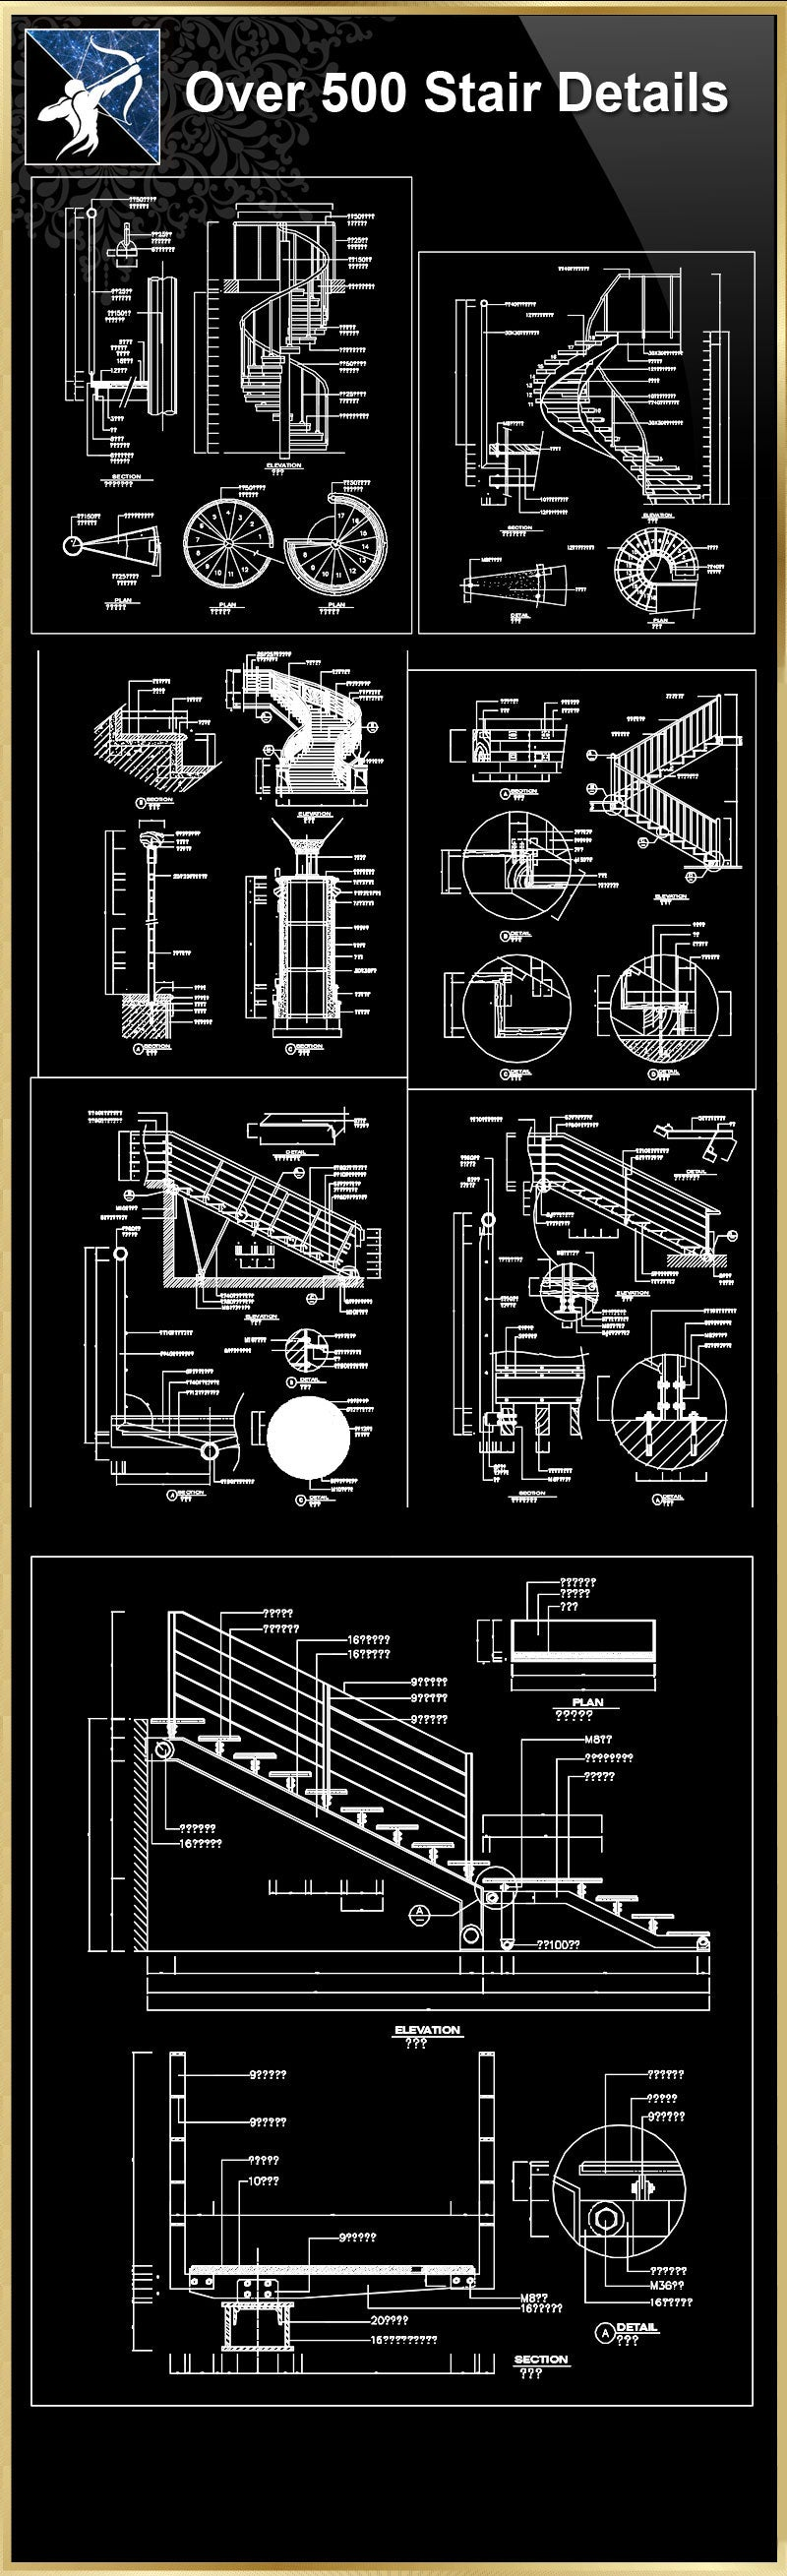 ★【Over 500 Stair Details CAD Drawings】